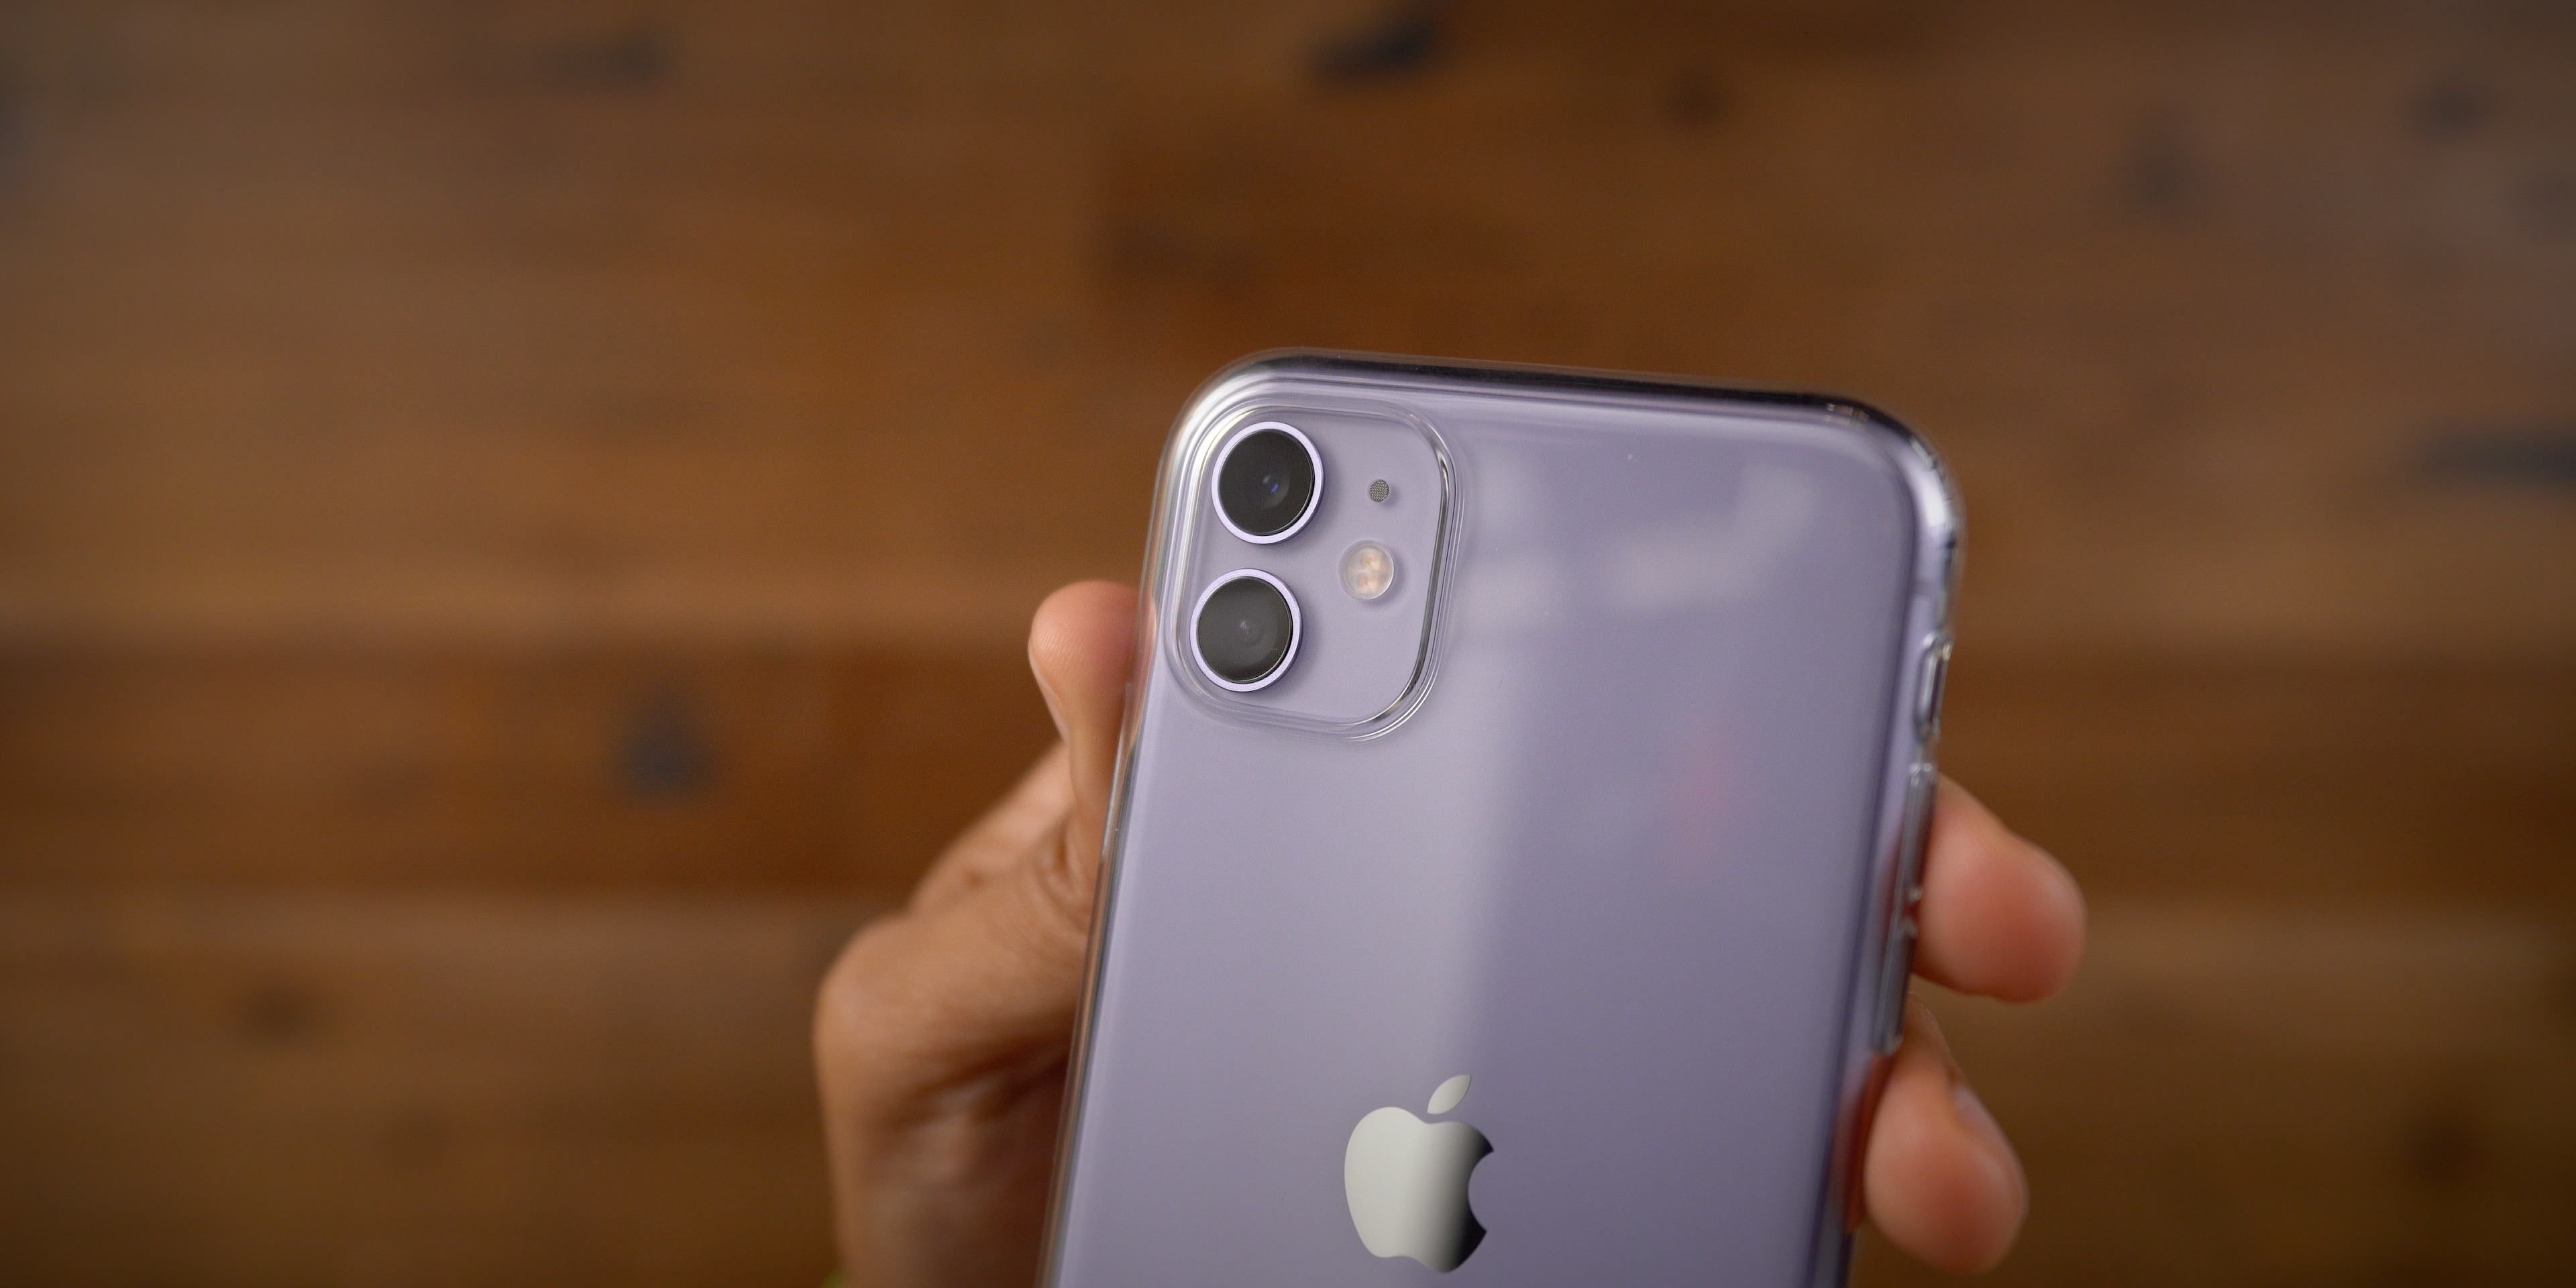 iPhone 11 Clear Case review is it worth $40? , 9to5Mac